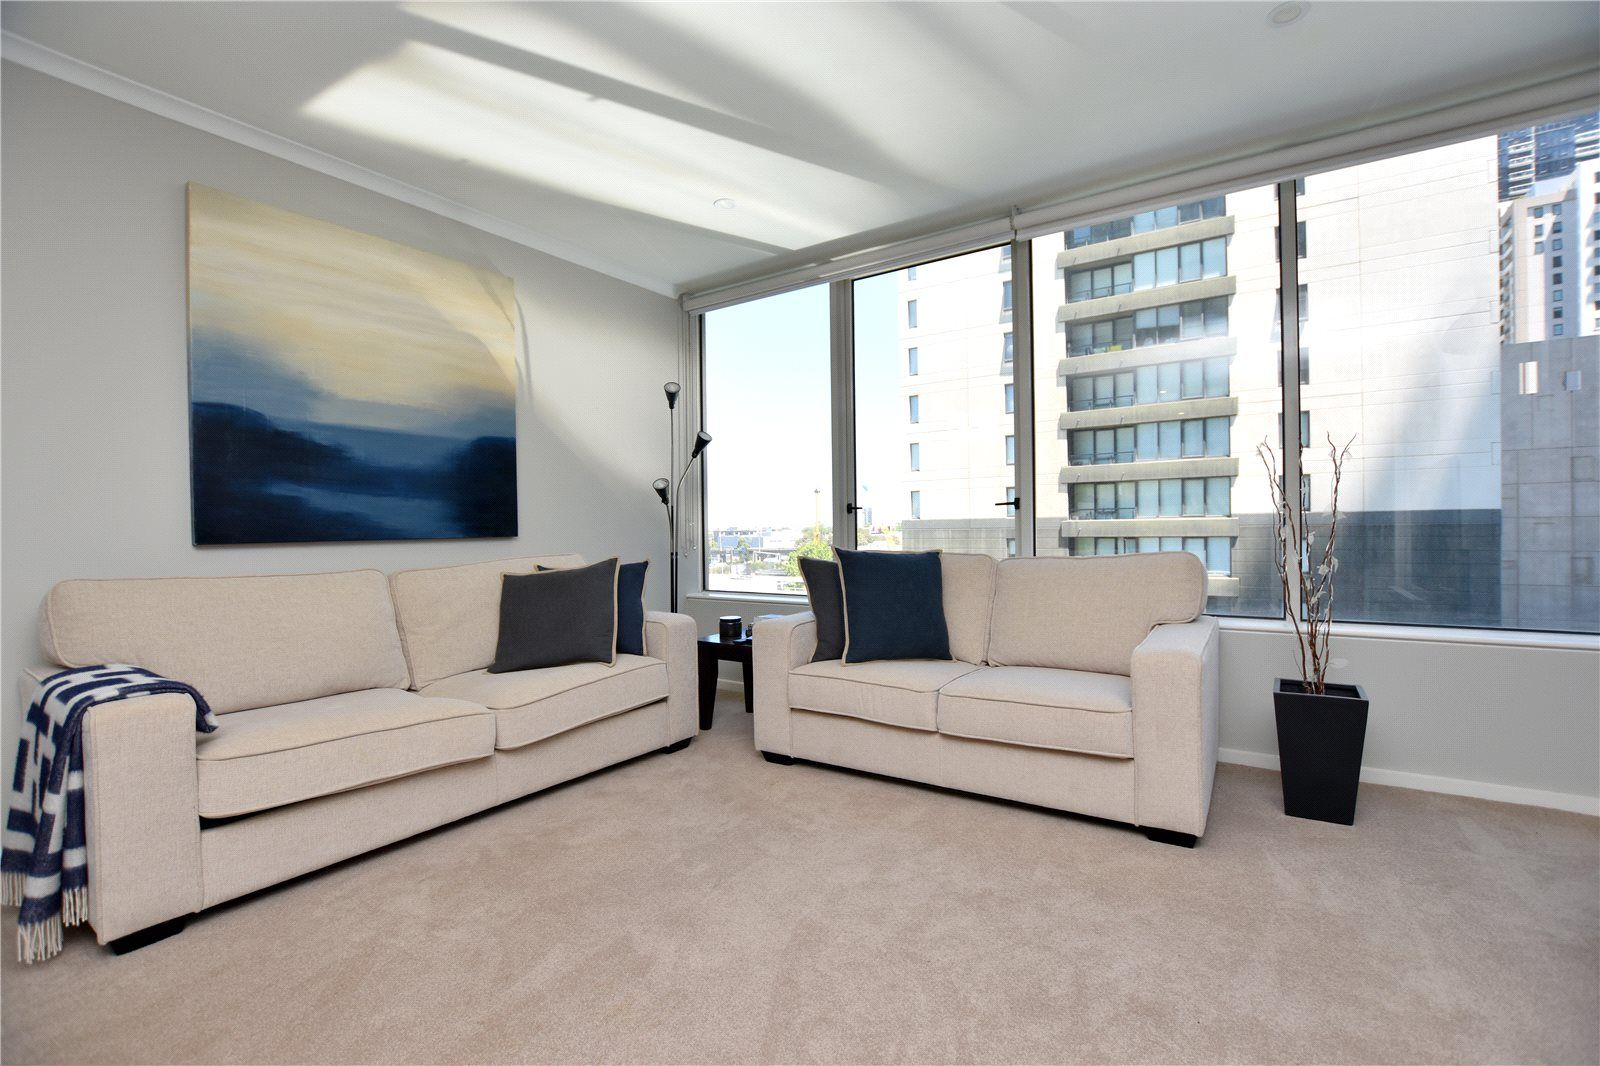 Southbank Condos: 7th Floor - Prepare To Be Impressed!